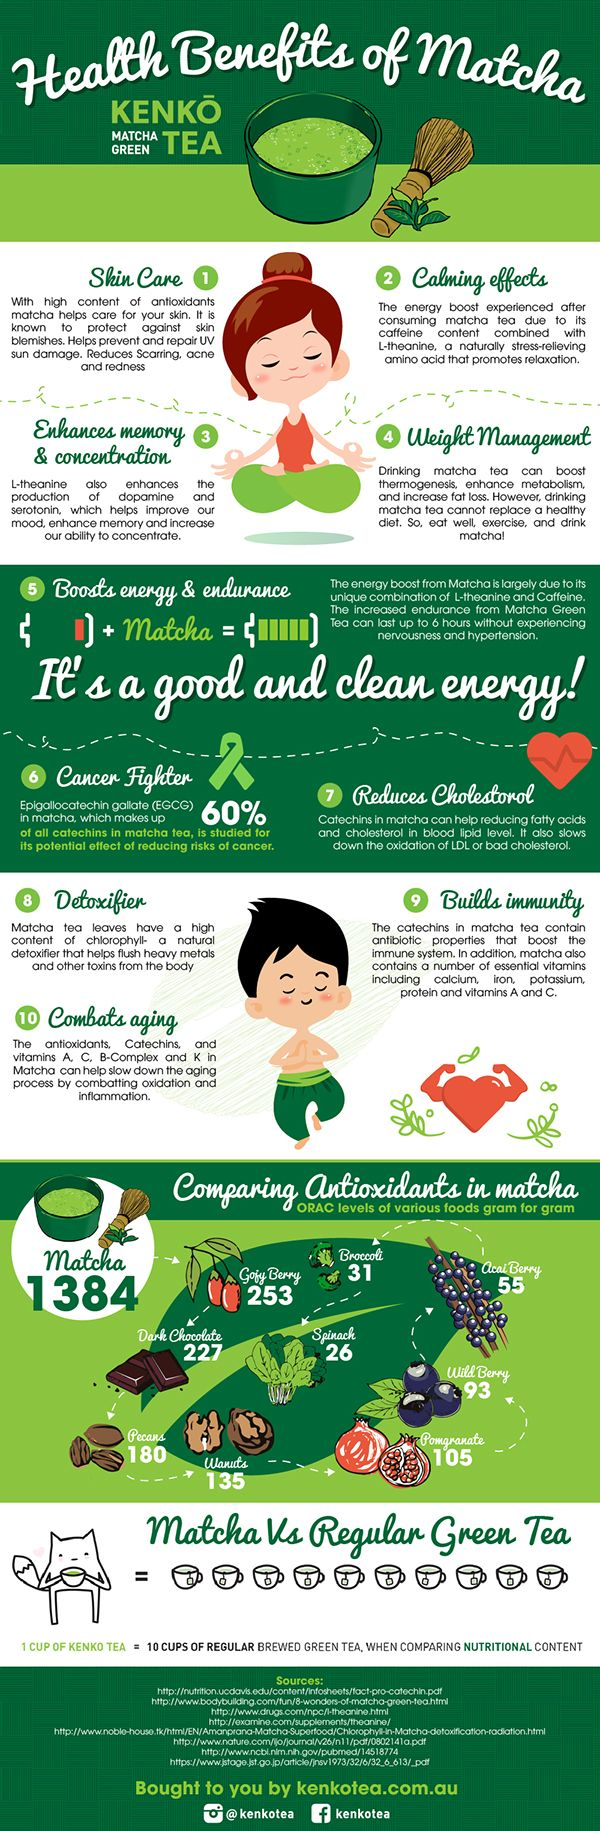 Matcha Green Tea Health benefits Infographic by kenkotea.com.auExplanation of the many health benefits of matcha green tea including weight loss, skin health, cancer and cardiovascular disease prevention, mind and mood enhancement, energy boost, immunit…